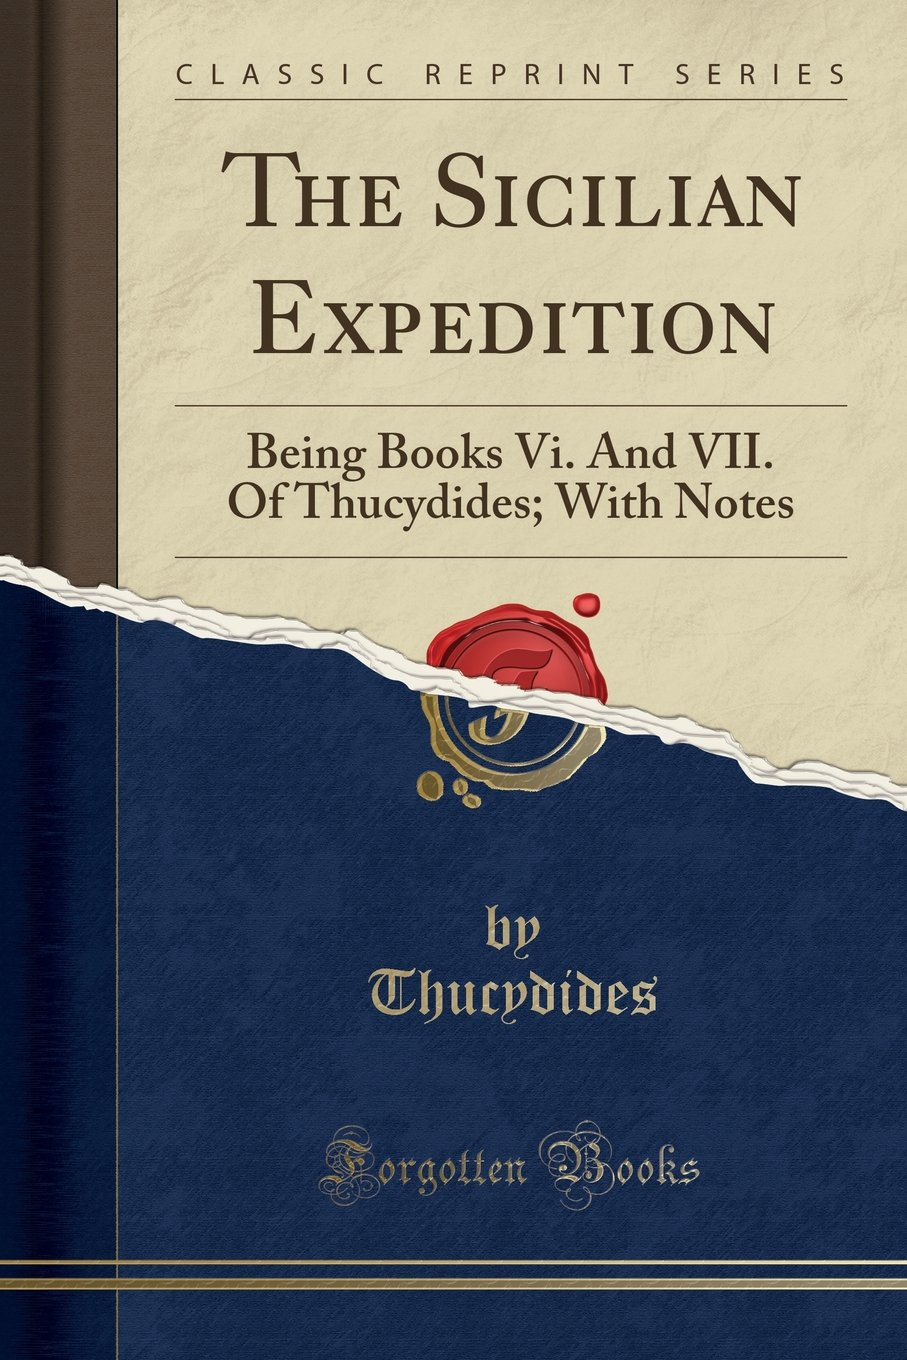 The Sicilian Expedition: Being Books Vi. And VII. Of Thucydides; With Notes (Classic Reprint) pdf